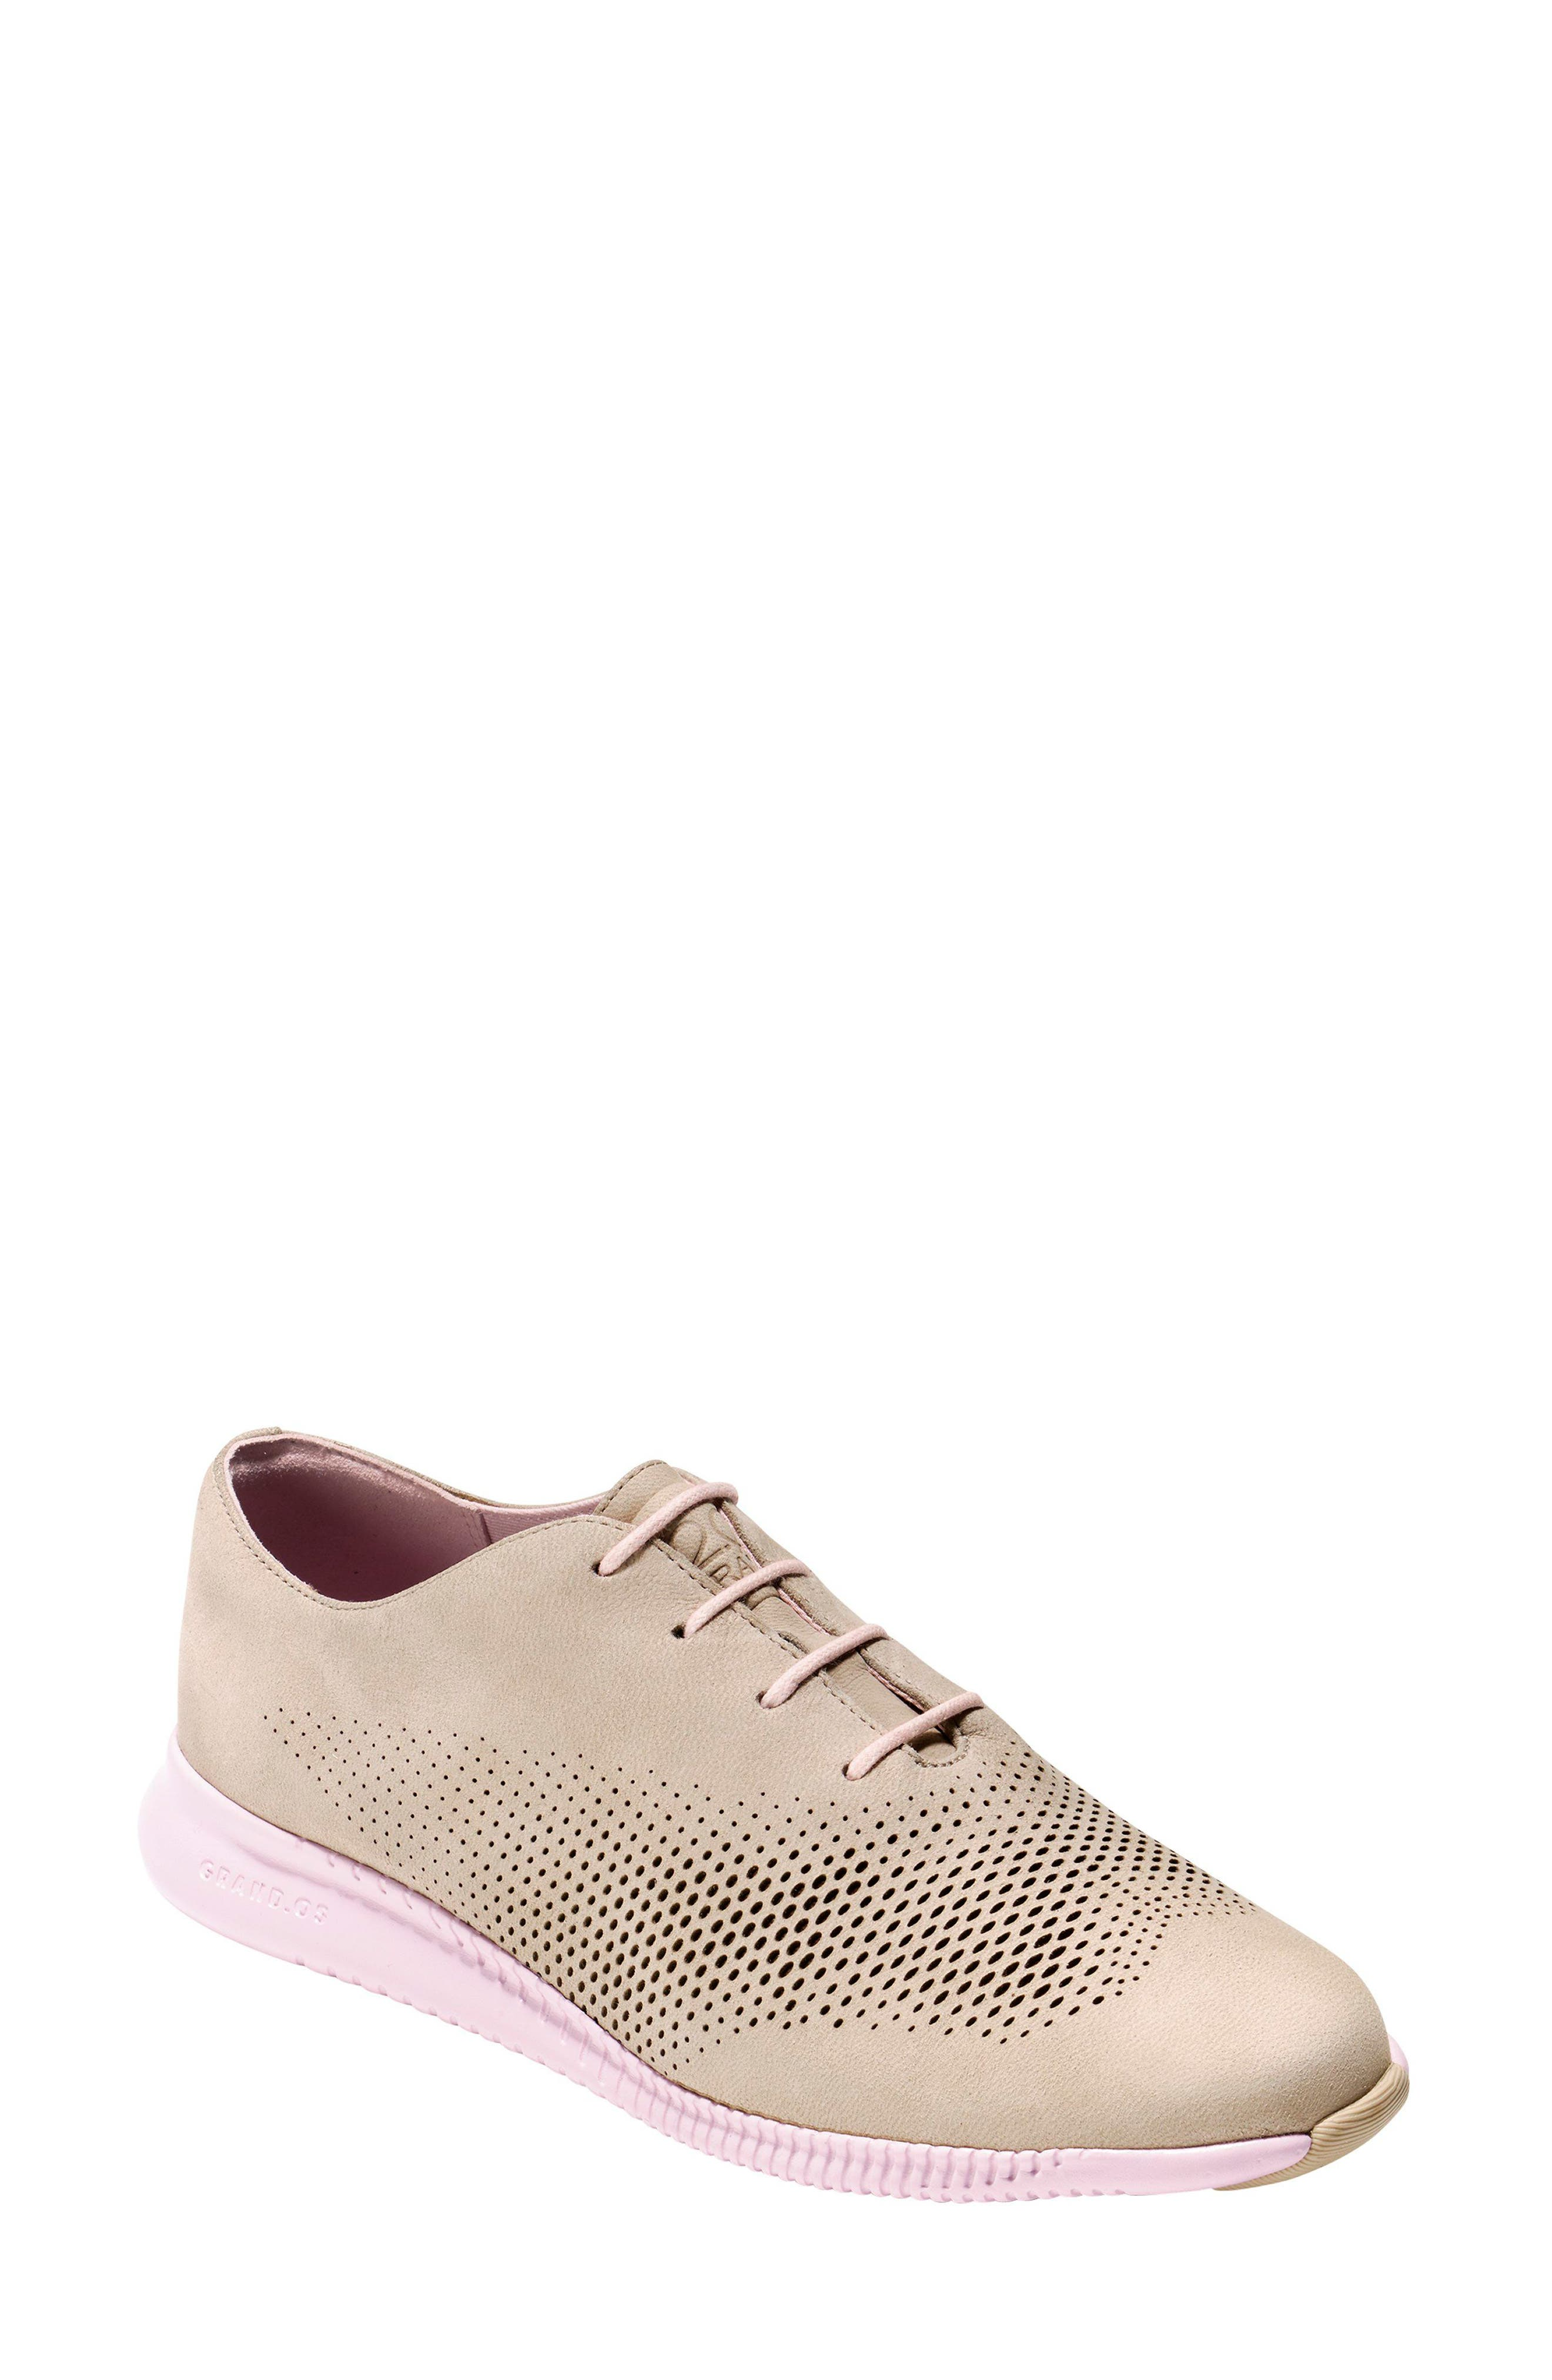 'ZeroGrand' Perforated Wingtip,                             Main thumbnail 1, color,                             Barley/ Pale Lilac Nubuck